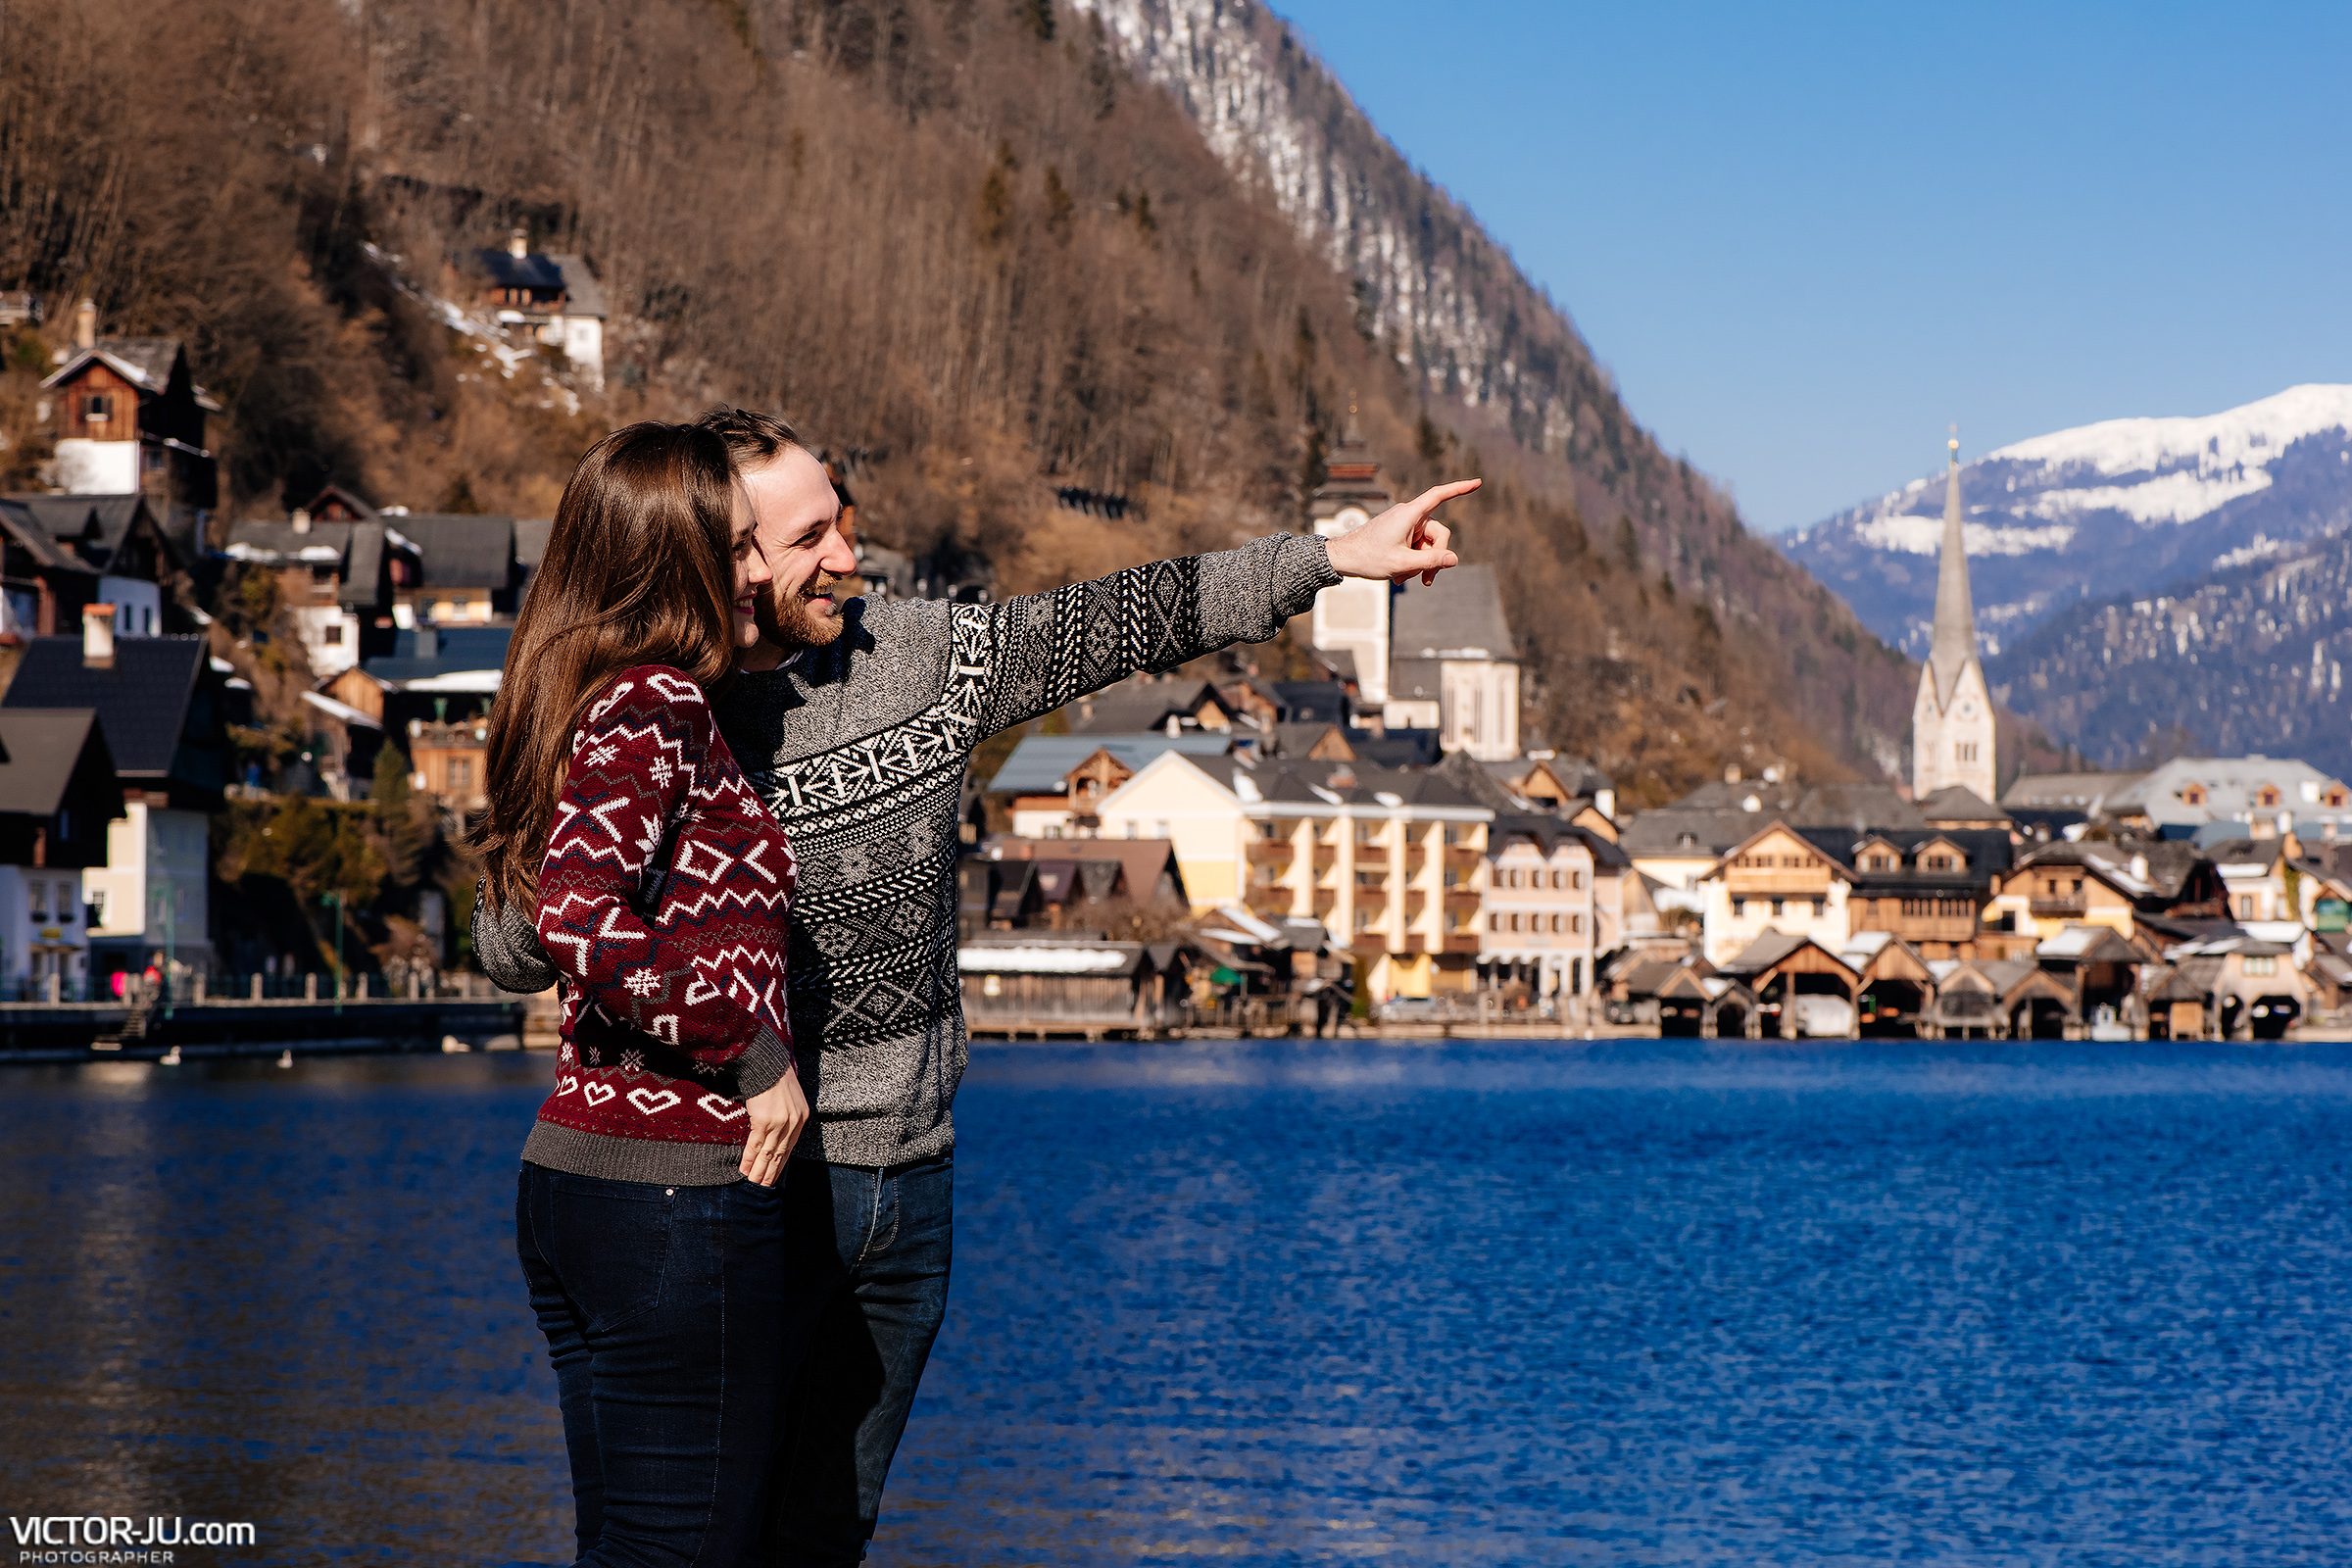 Engagement photo shoot in Hallstatt, Austria